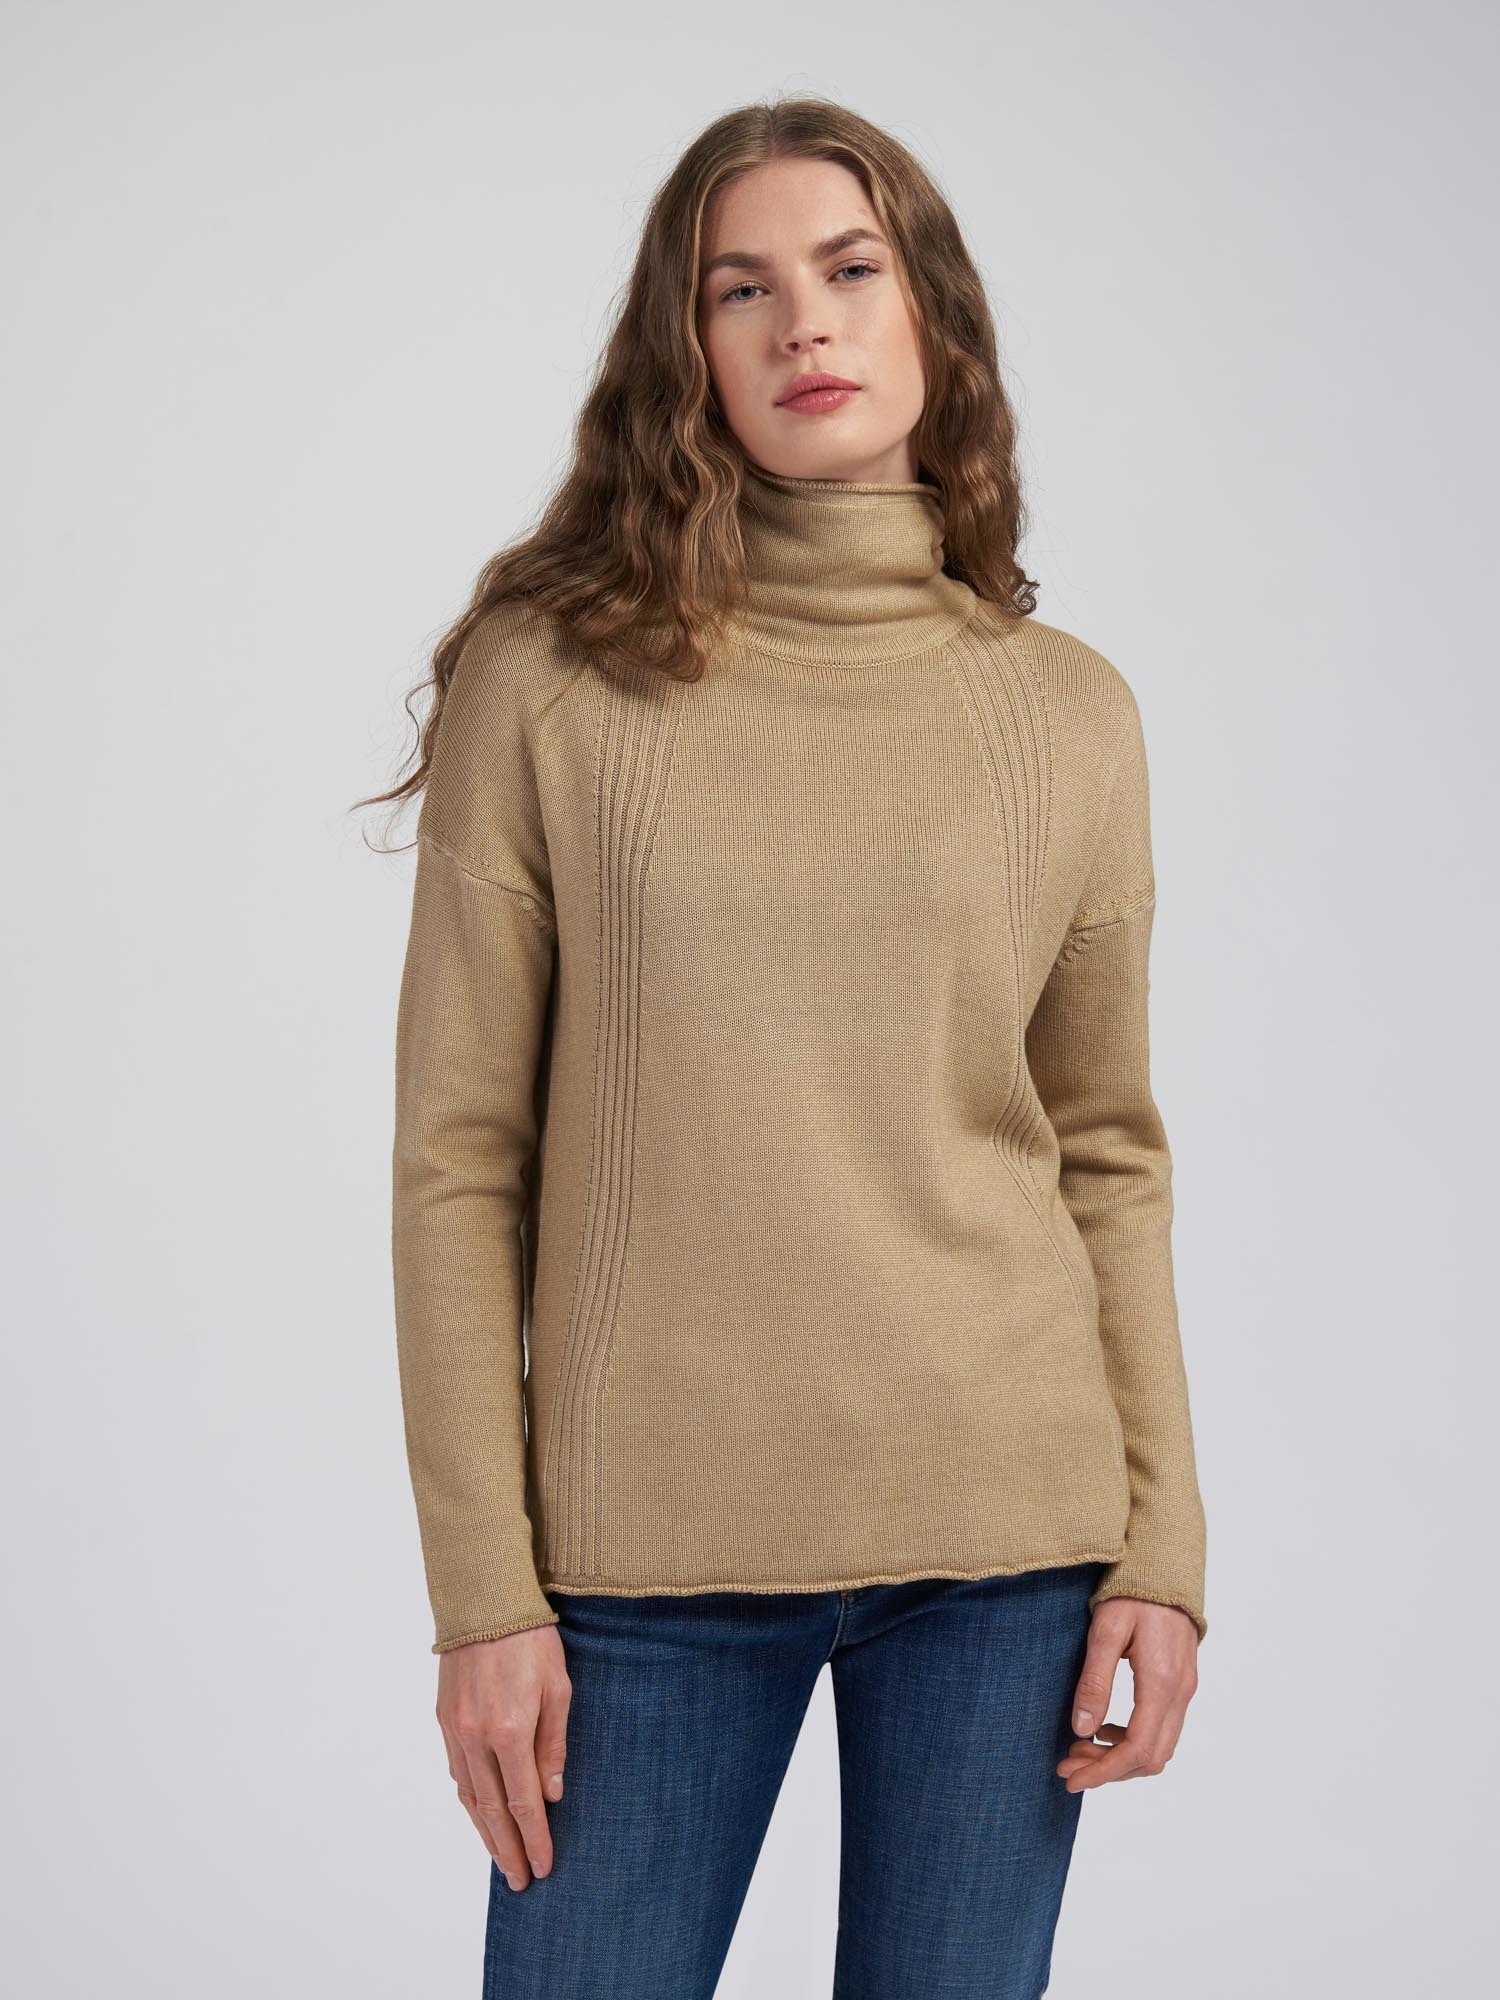 TURTLENECK WITH STRIPED DECORATION - Blauer